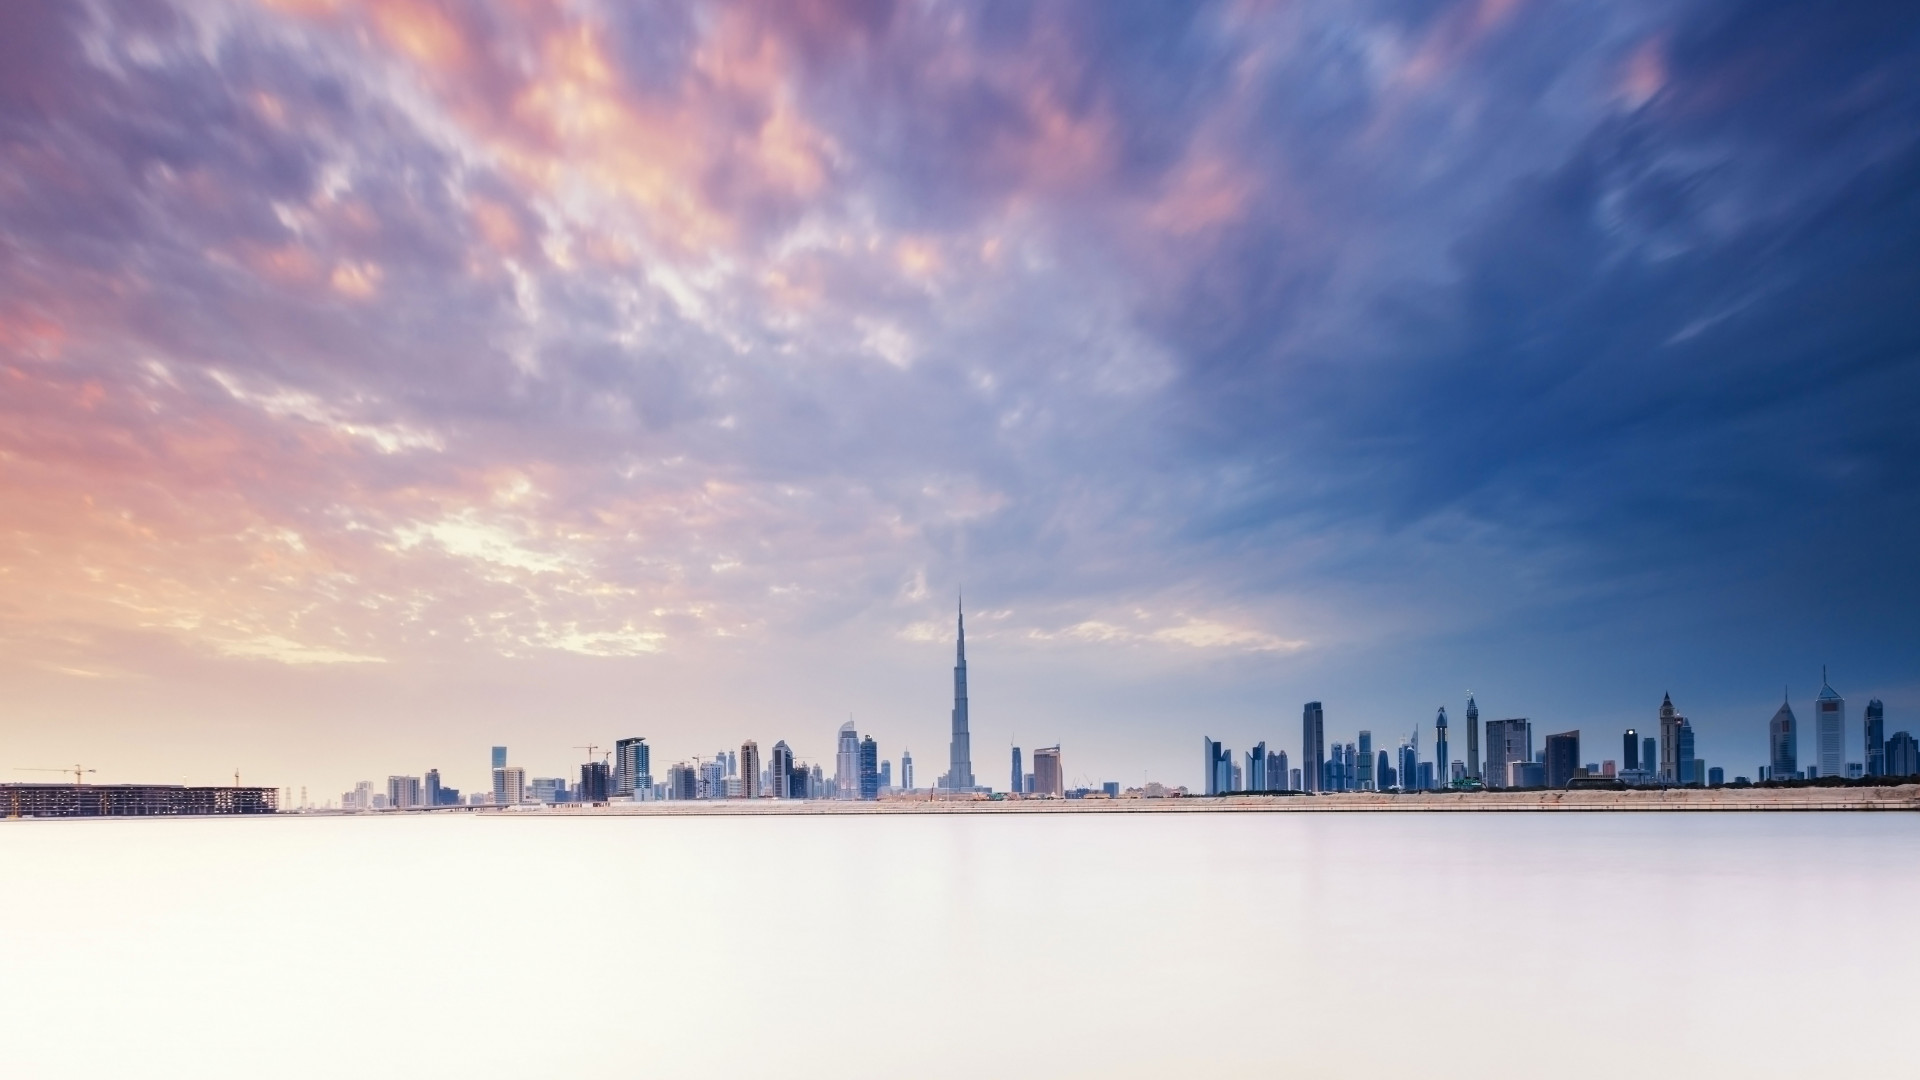 Dubai skyline from Arabian gulf